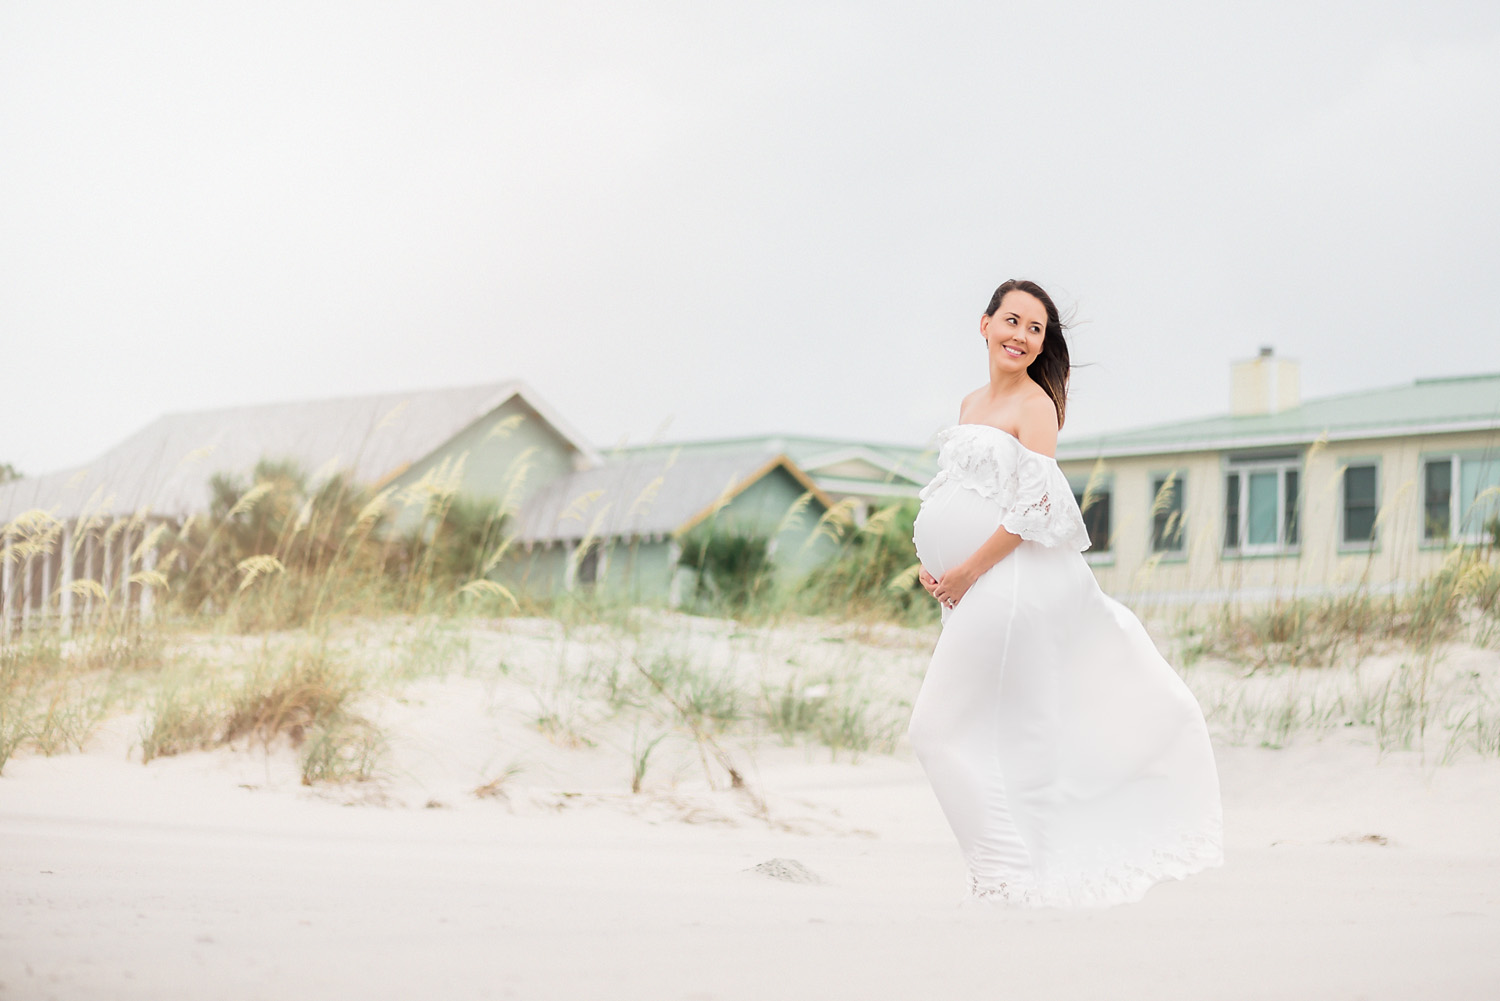 maternity-newborn-baby-photographer-photos-savannah-richmond-hill-baby-photos-ellabell-hinesville-guyton-Pooler-Port-Wentwort-Hilton-Head-ga4.jpg